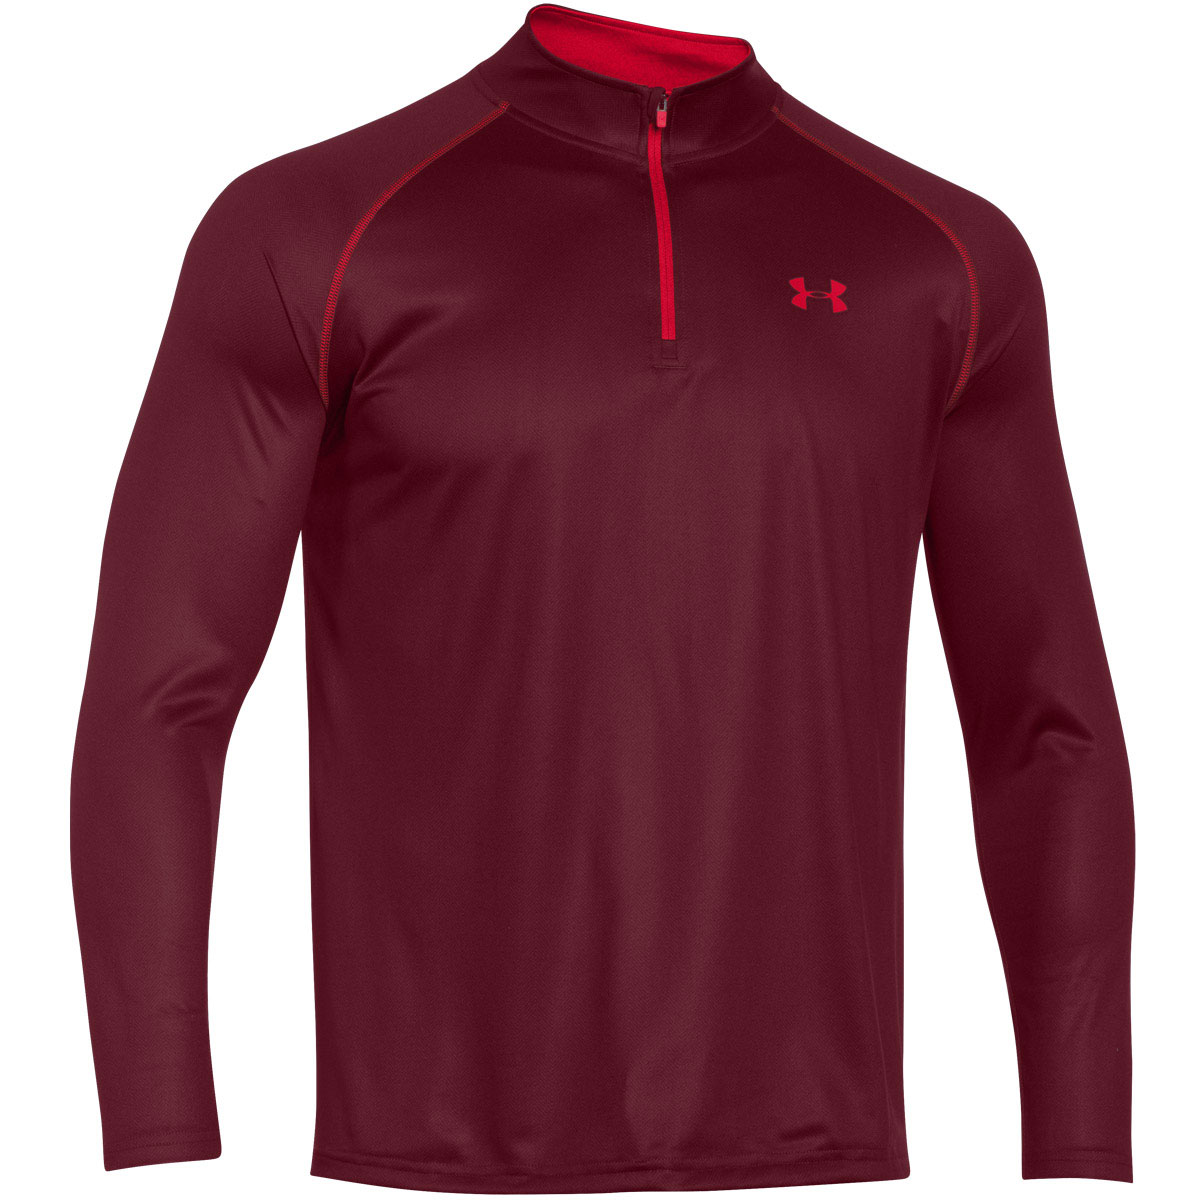 Under-Armour-Mens-UA-Tech-1-4-Zip-Long-Sleeve-Top-Workout-Layer-27-OFF-RRP thumbnail 45